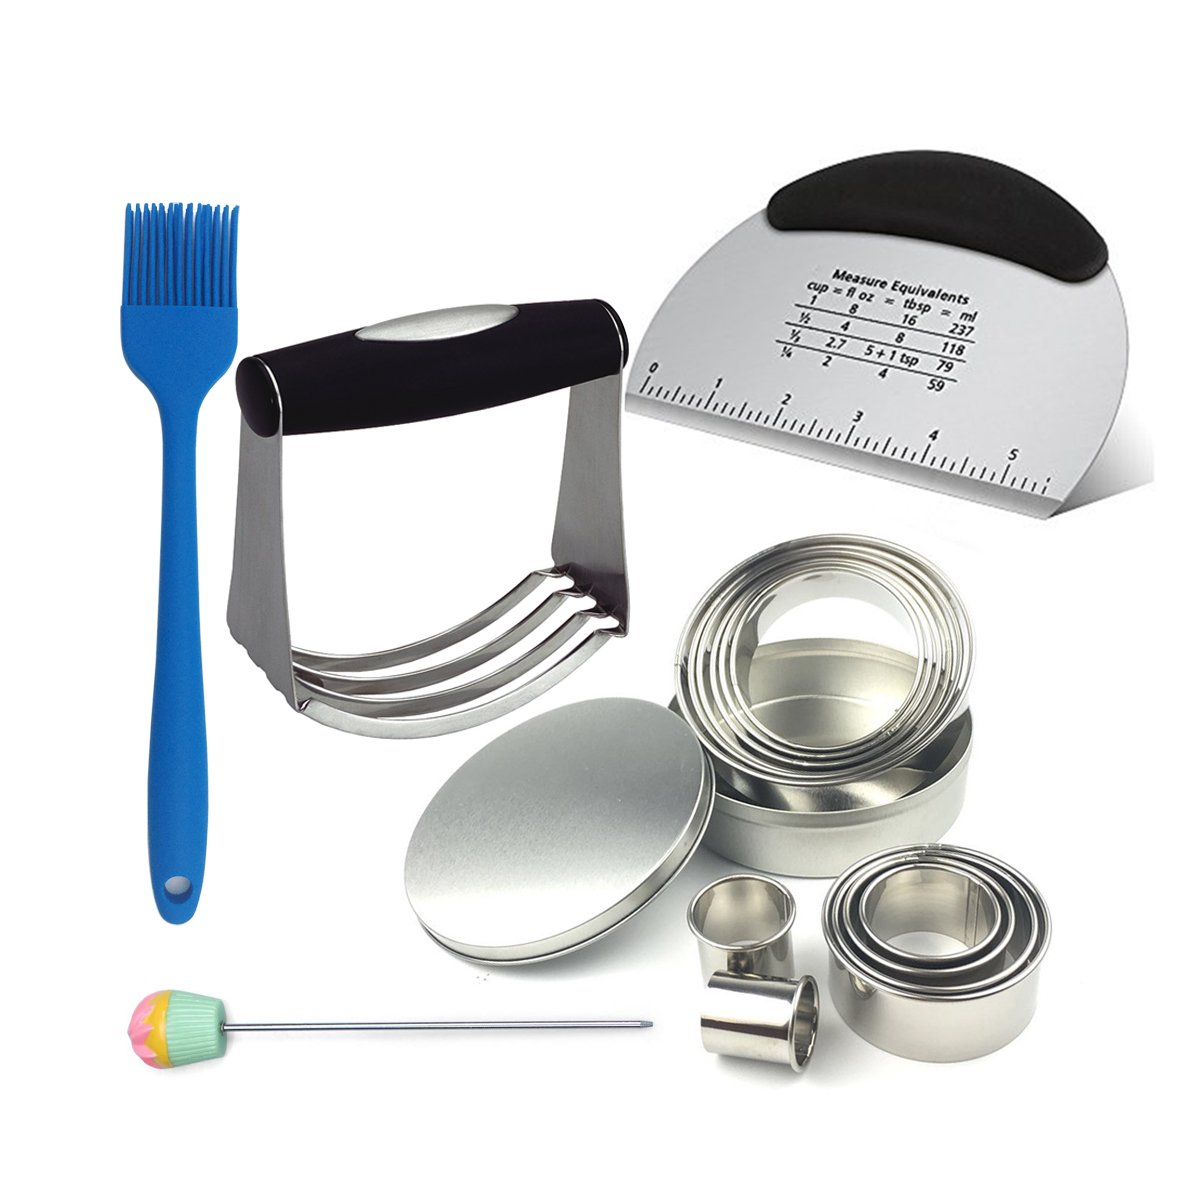 Baking & Pastry Utensils Set with Stainless Steel Dough Blender, Pastry Scraper, Biscuit Cutter Set(12 PCS), Basting Brush and Cake Tester, All in One Package